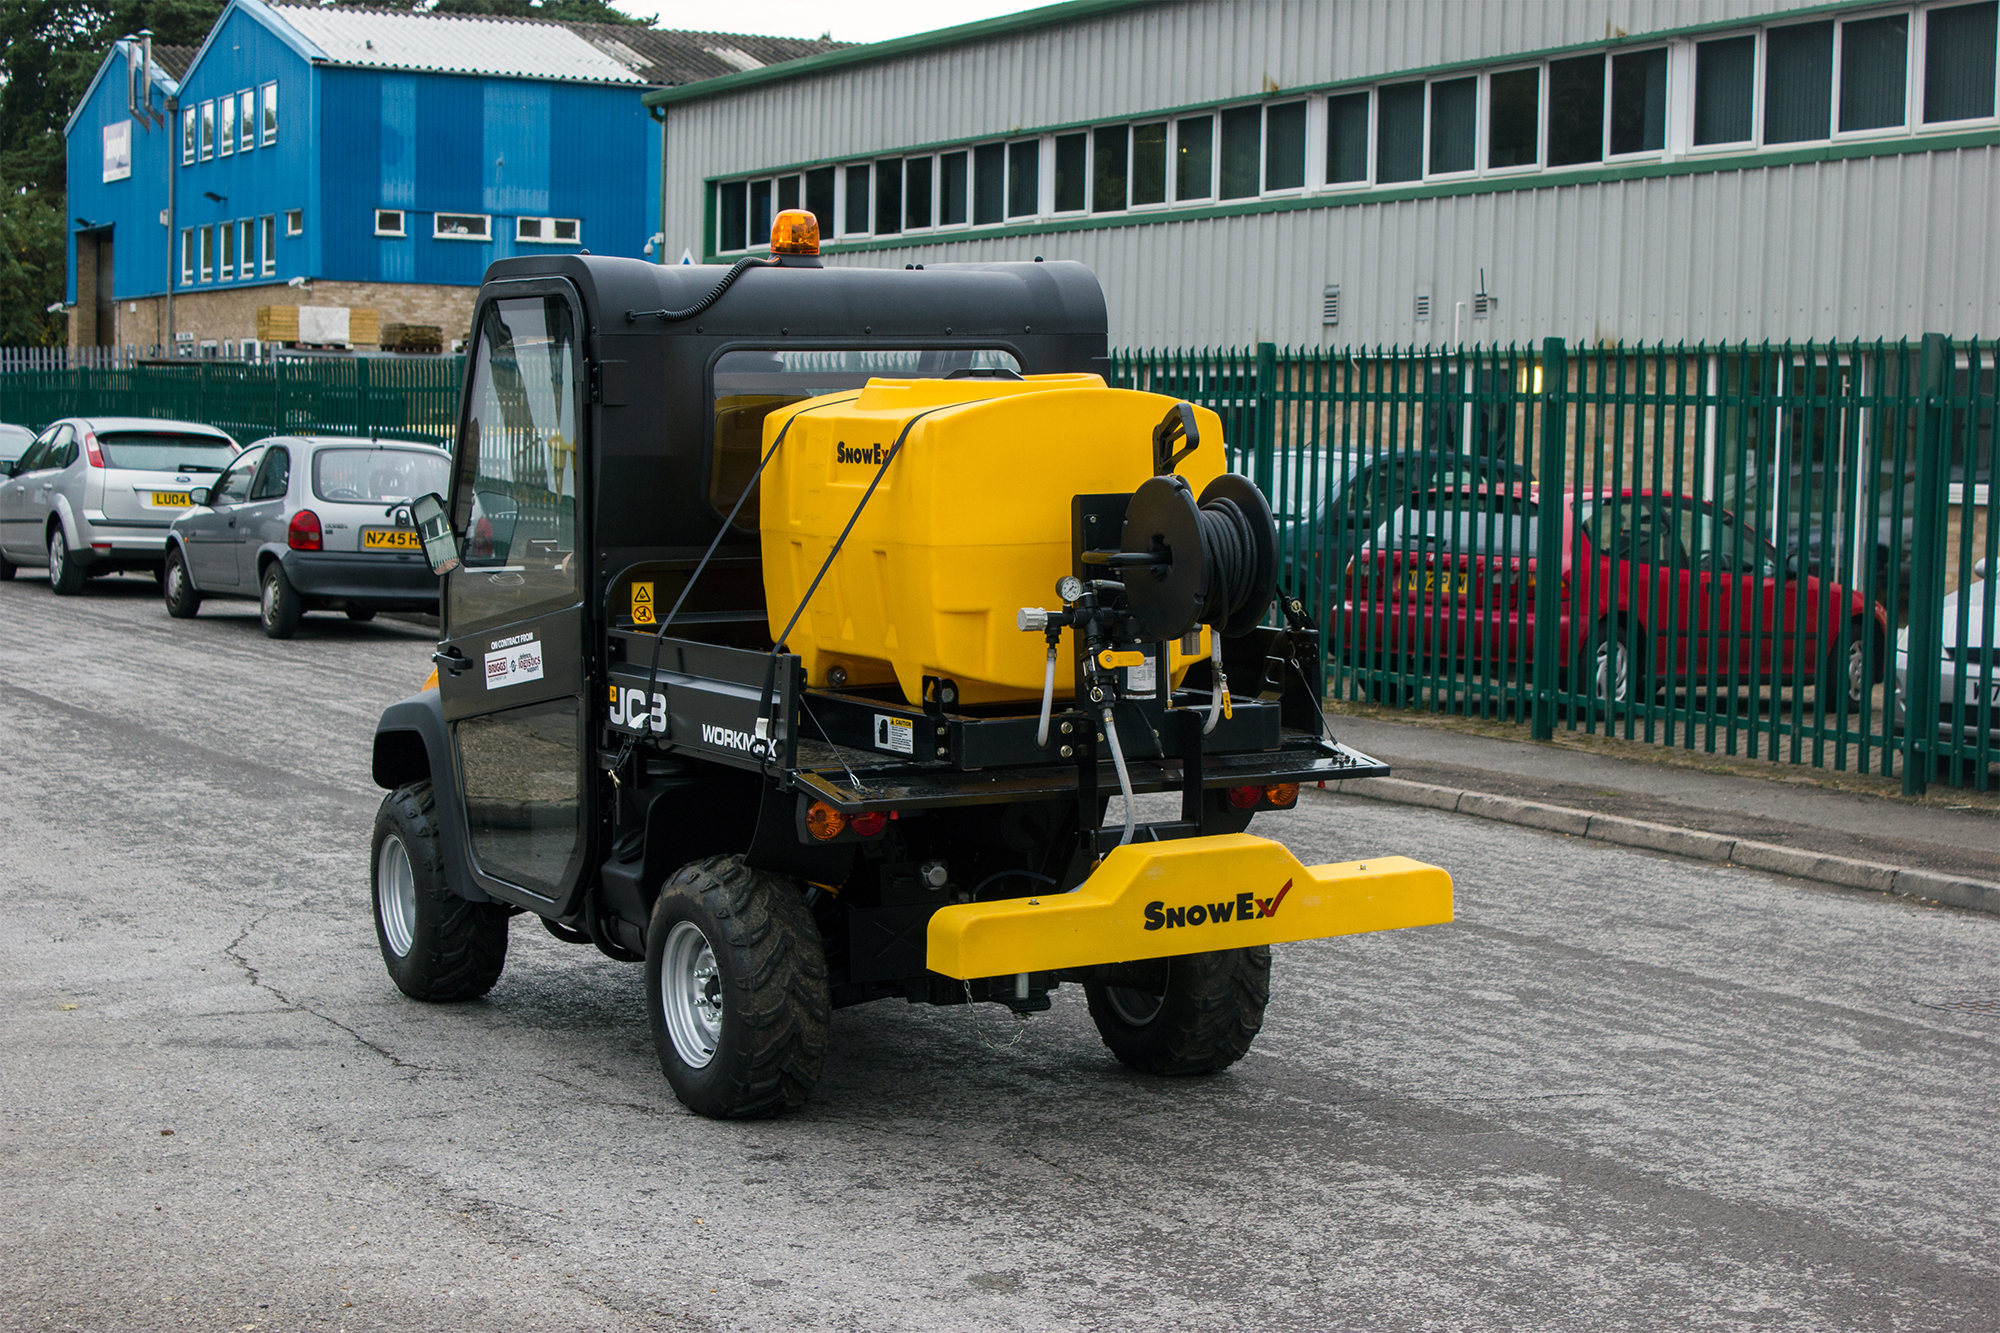 Vss 1000 1 - professional groundcare & agricultural equipment